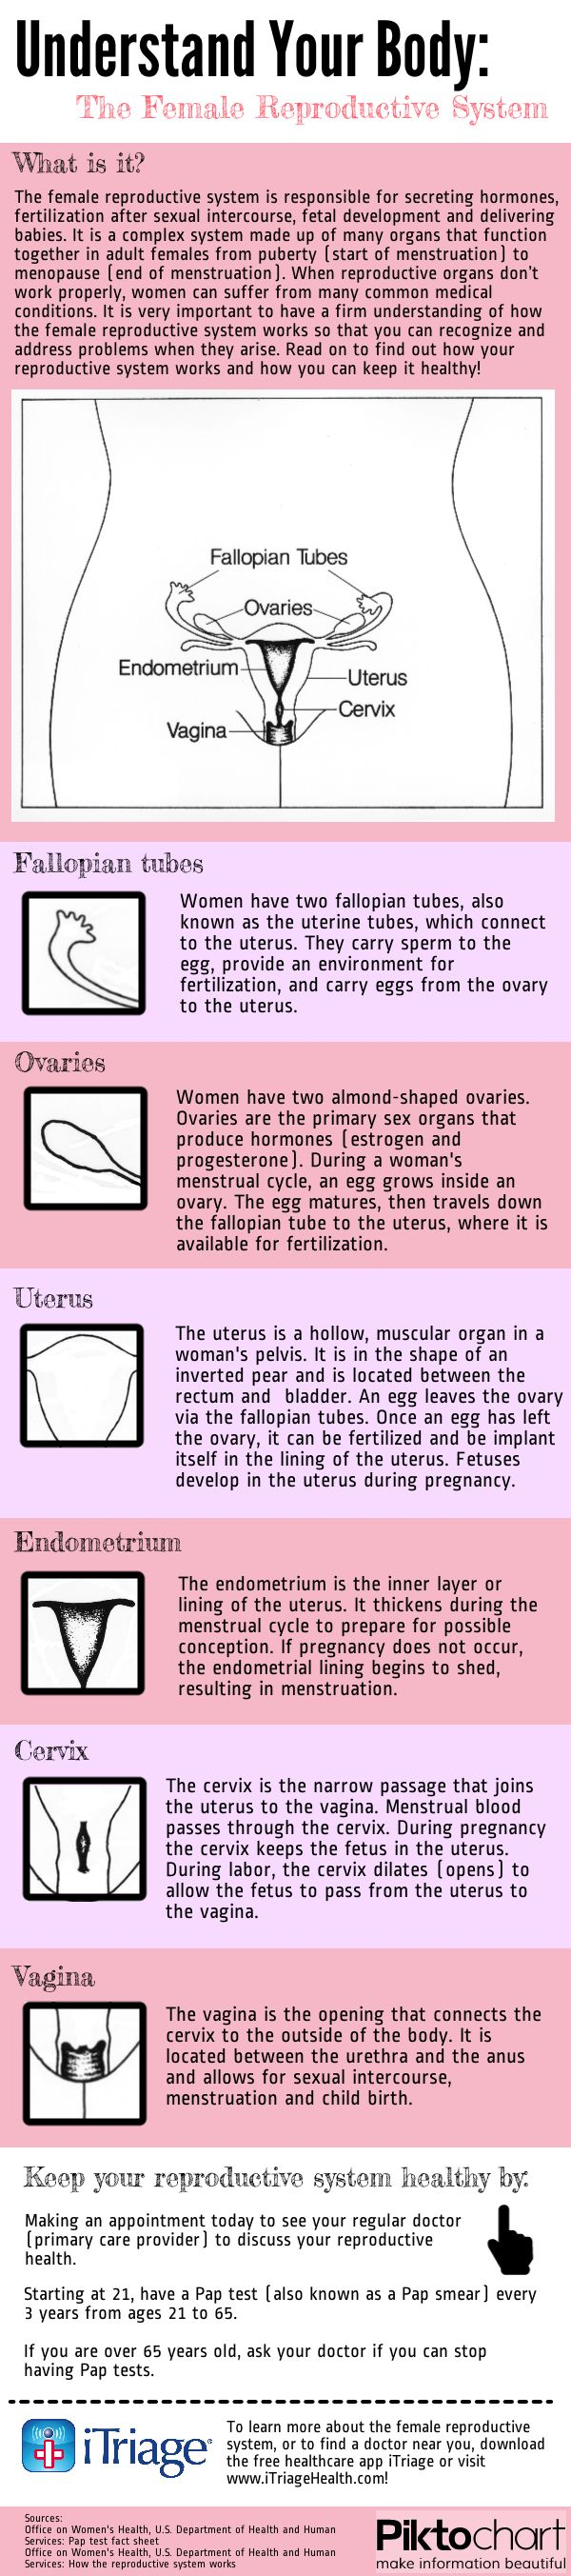 In honor of Cervical Health Awareness Month, iTriage created this infographic about the female reproductive system. In 2009 alone, 84,155 women in the United States were diagnosed with a gynecological cancer, and 27,813 women died from a gynecological cancer, according to the Centers for Disease Control and Prevention (CDC). Read this infographic to learn more ...